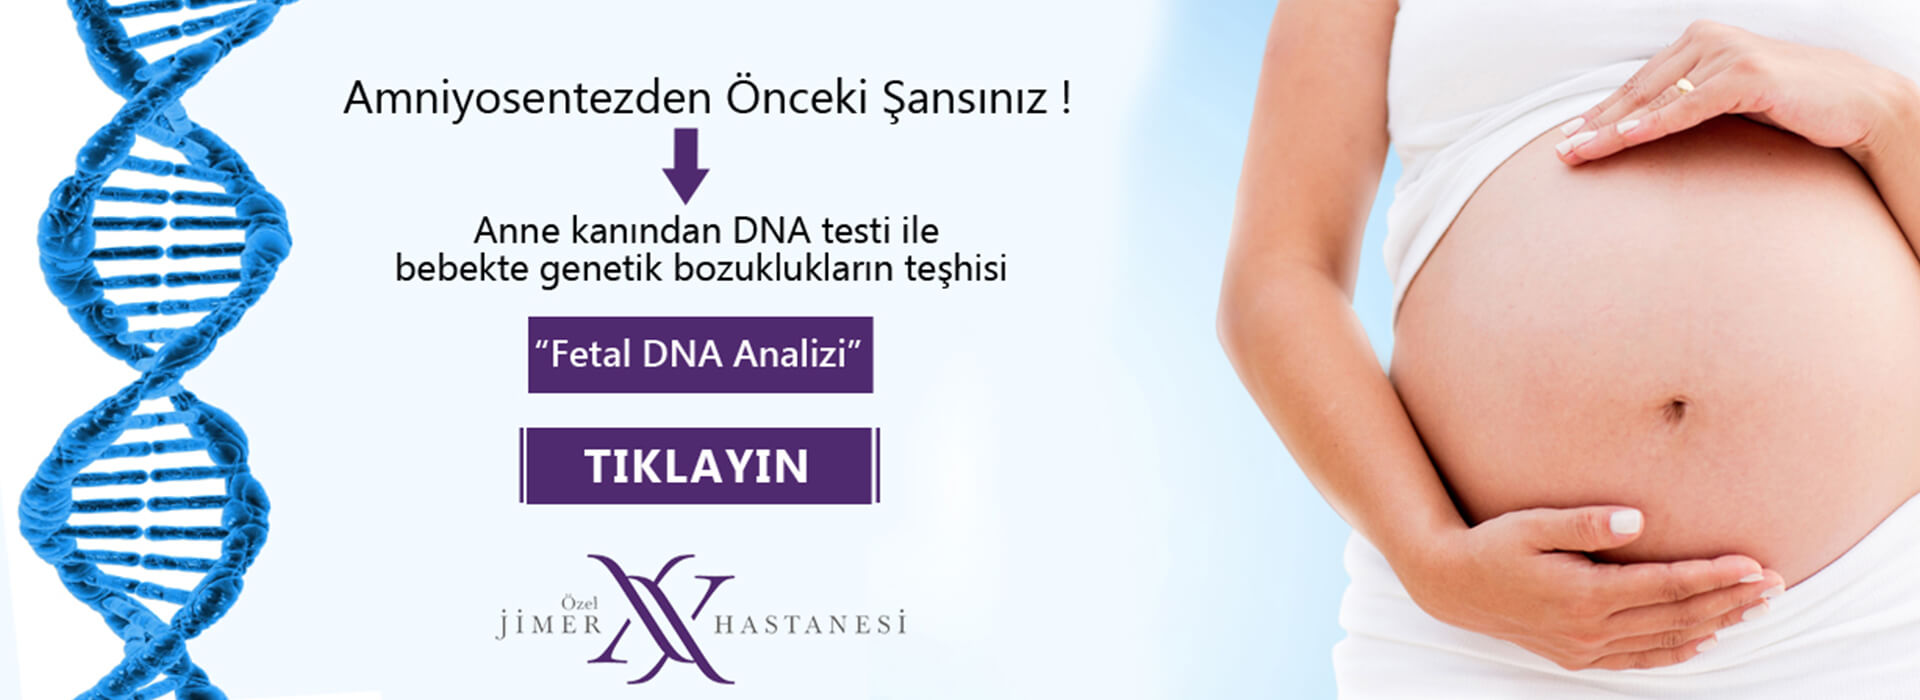 Fetal DNA Analizi